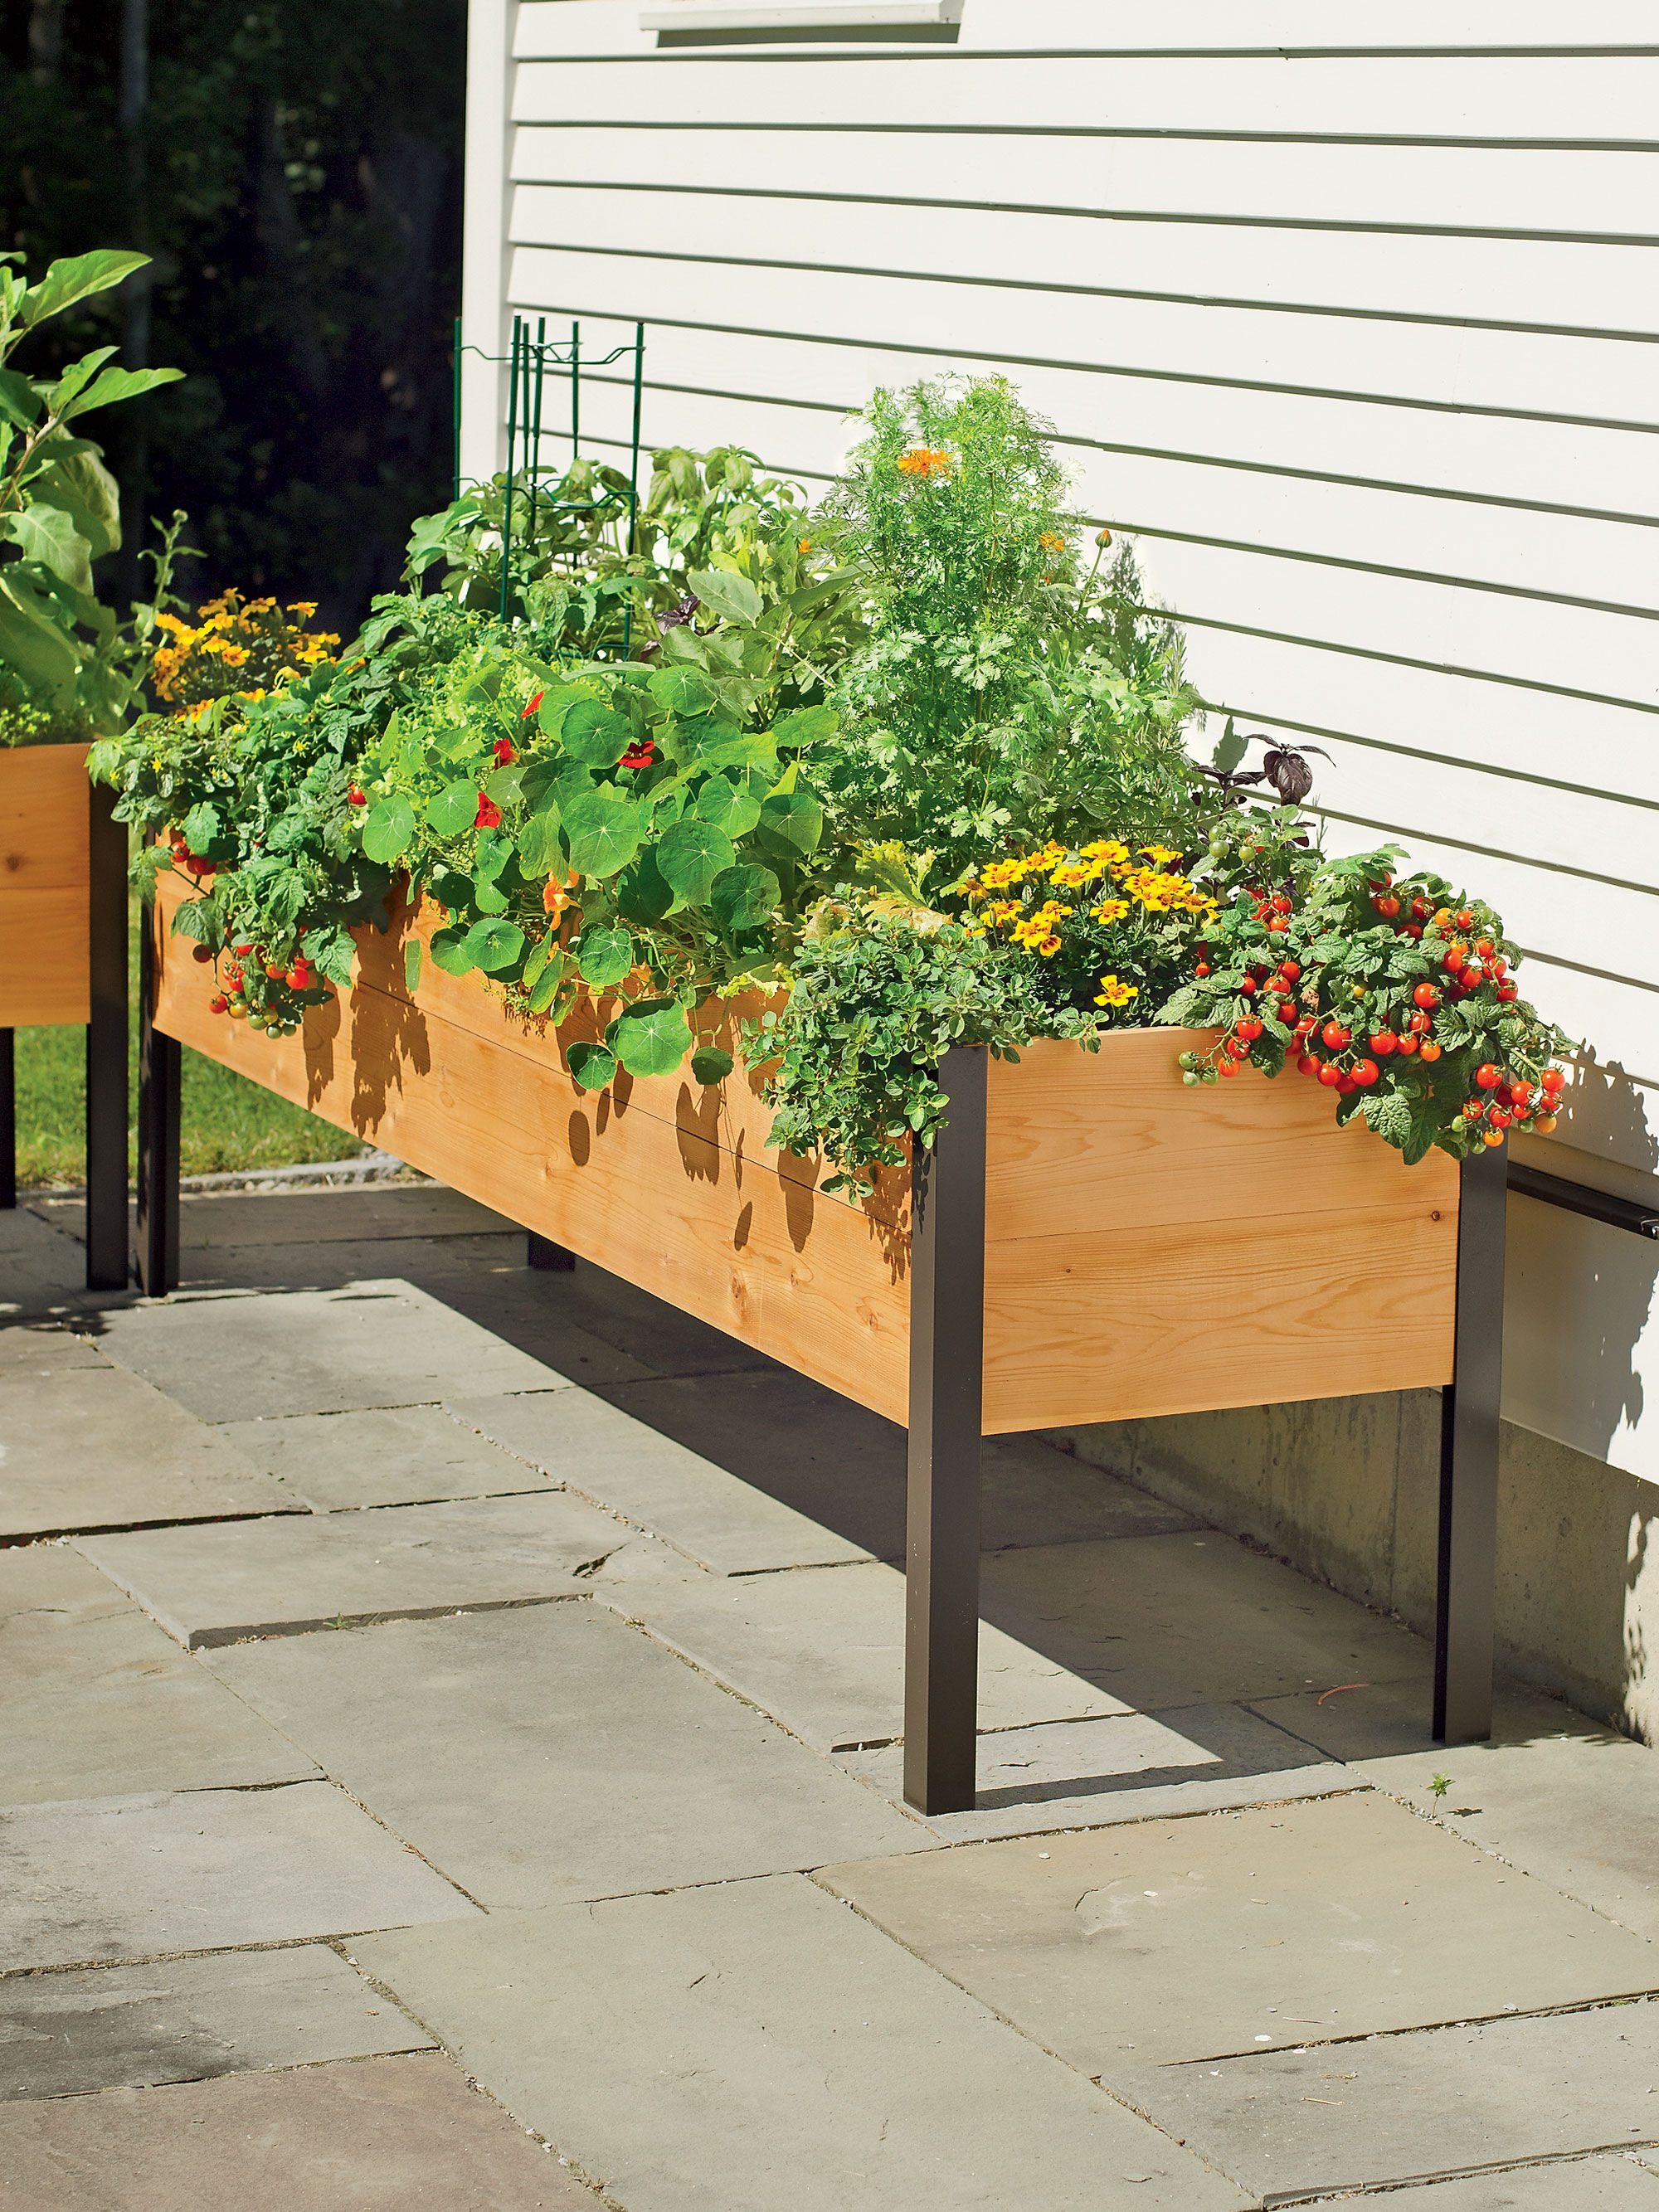 Counter Height Garden Boxes : Planter Boxes: Standing Height Cedar Raised Garden - 742x1120 - jpeg